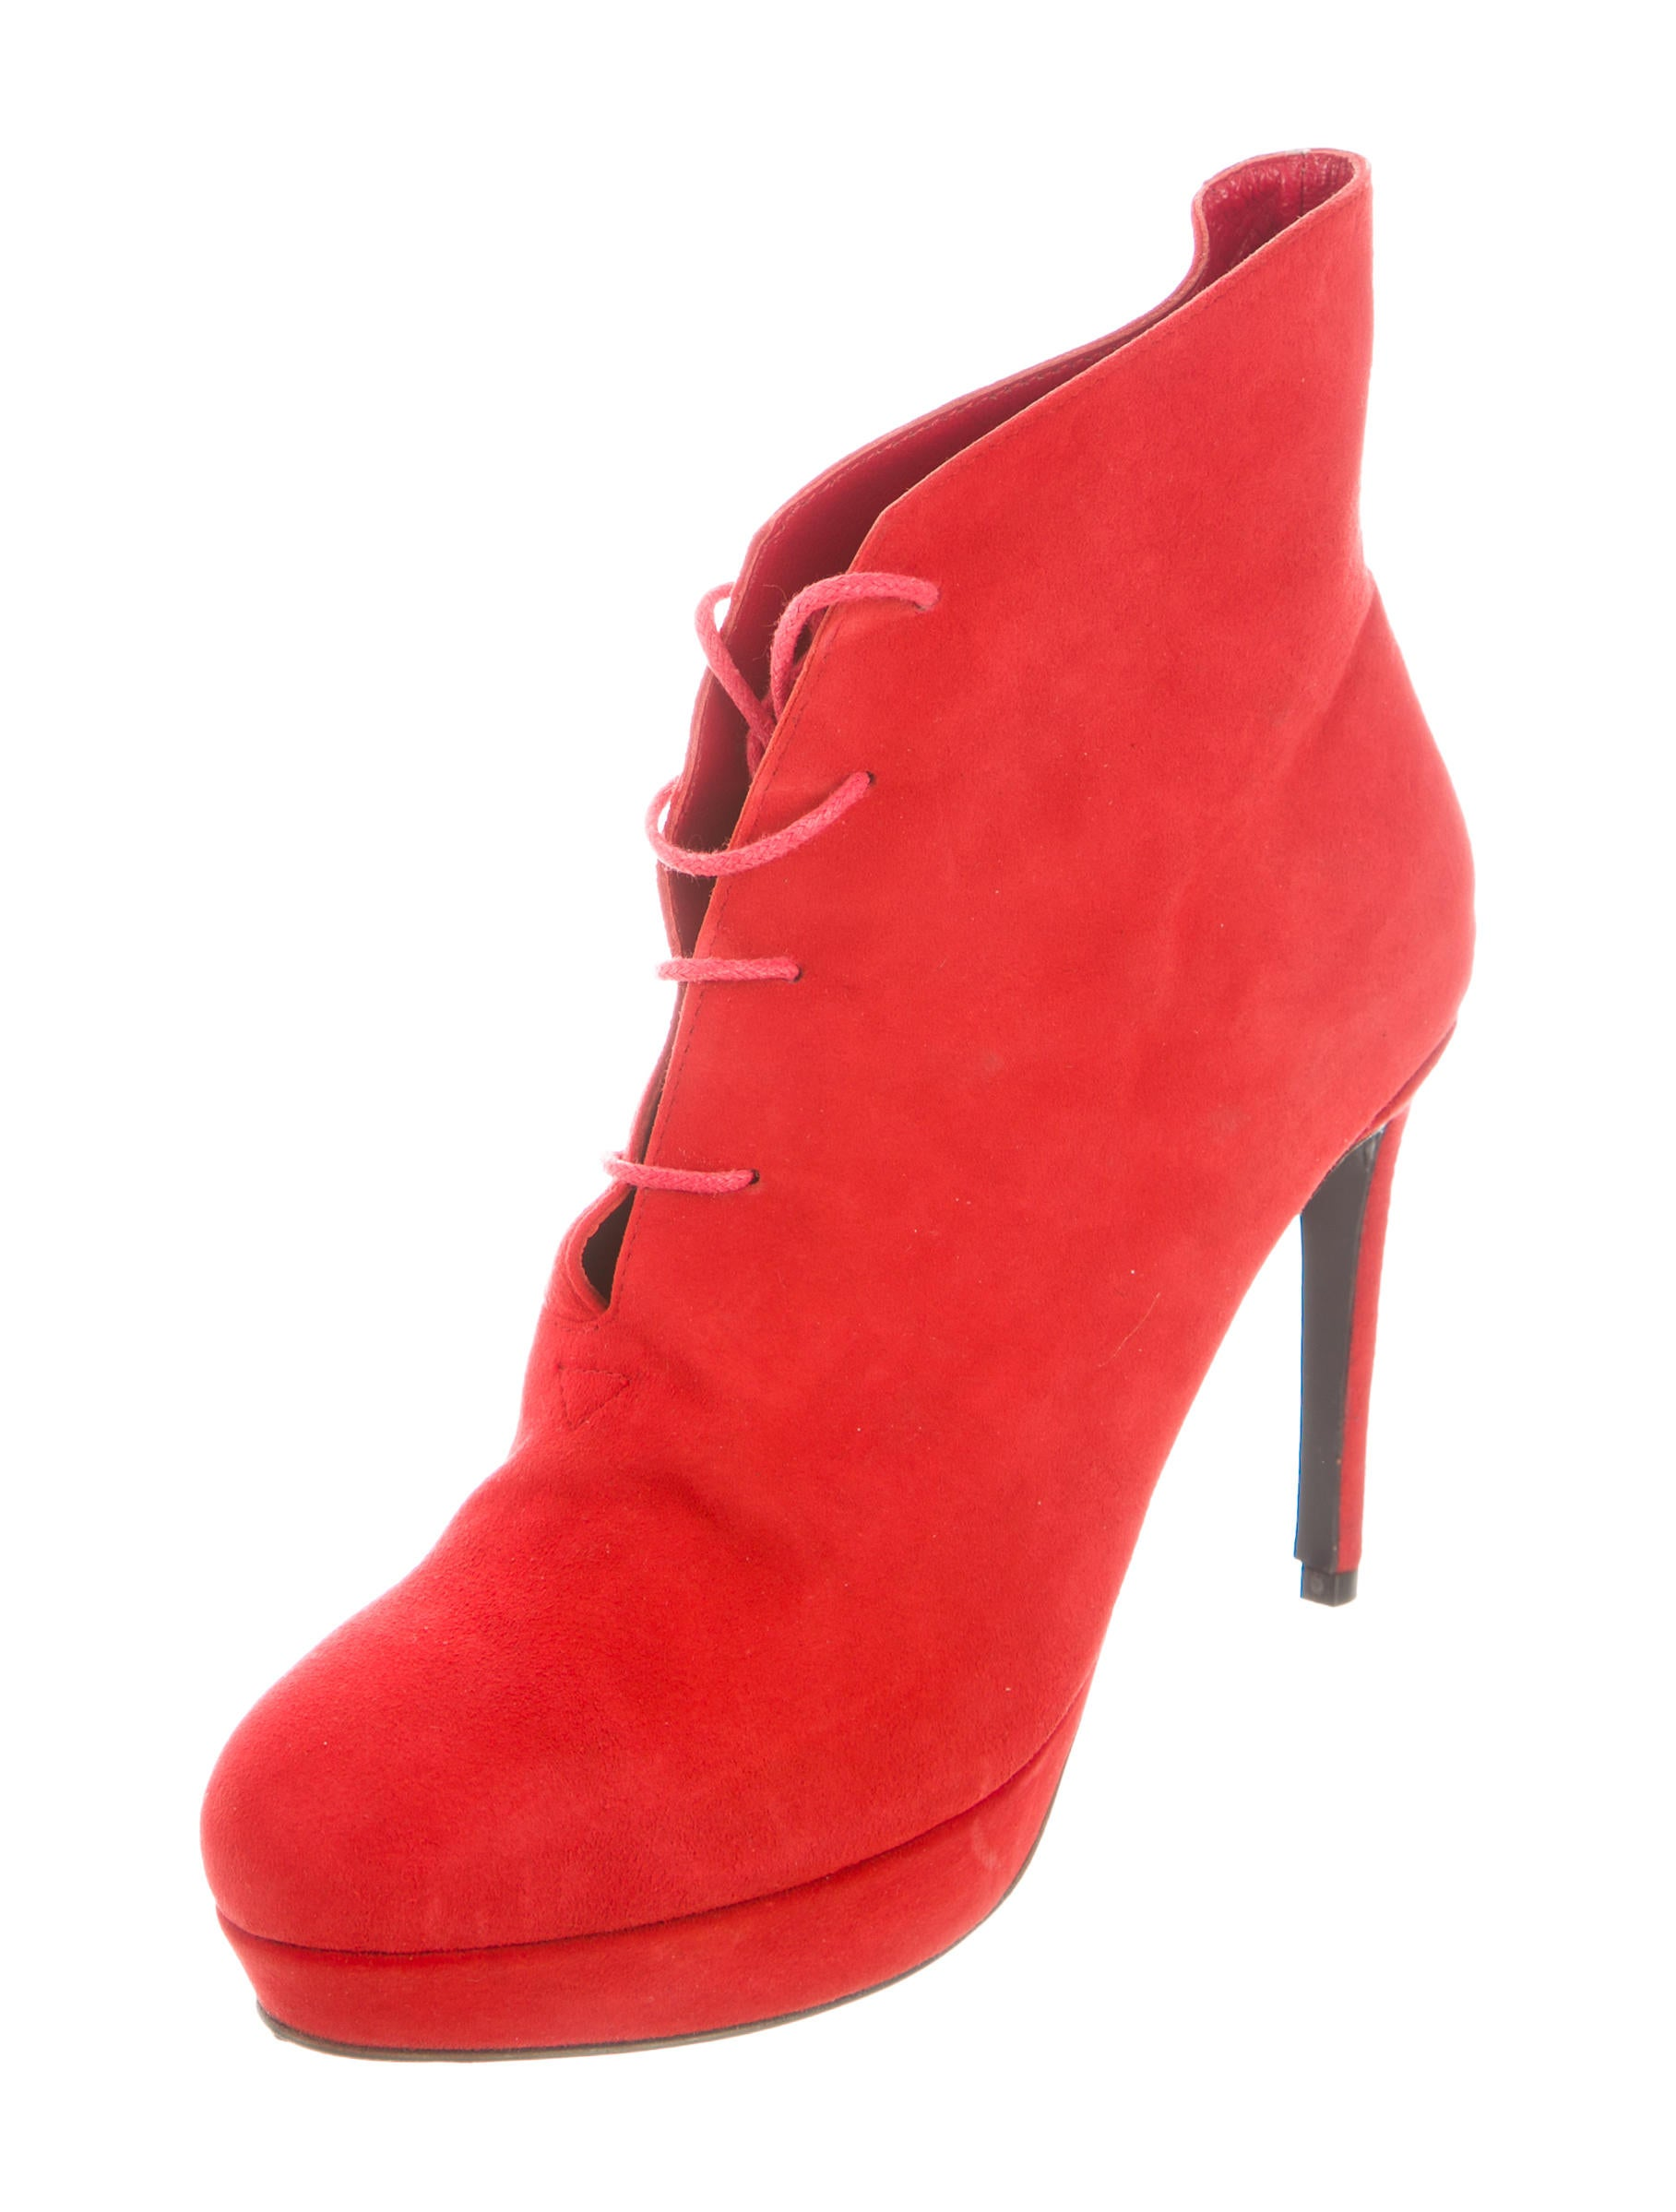 rodebjer suede platform ankle boots shoes wqz20347